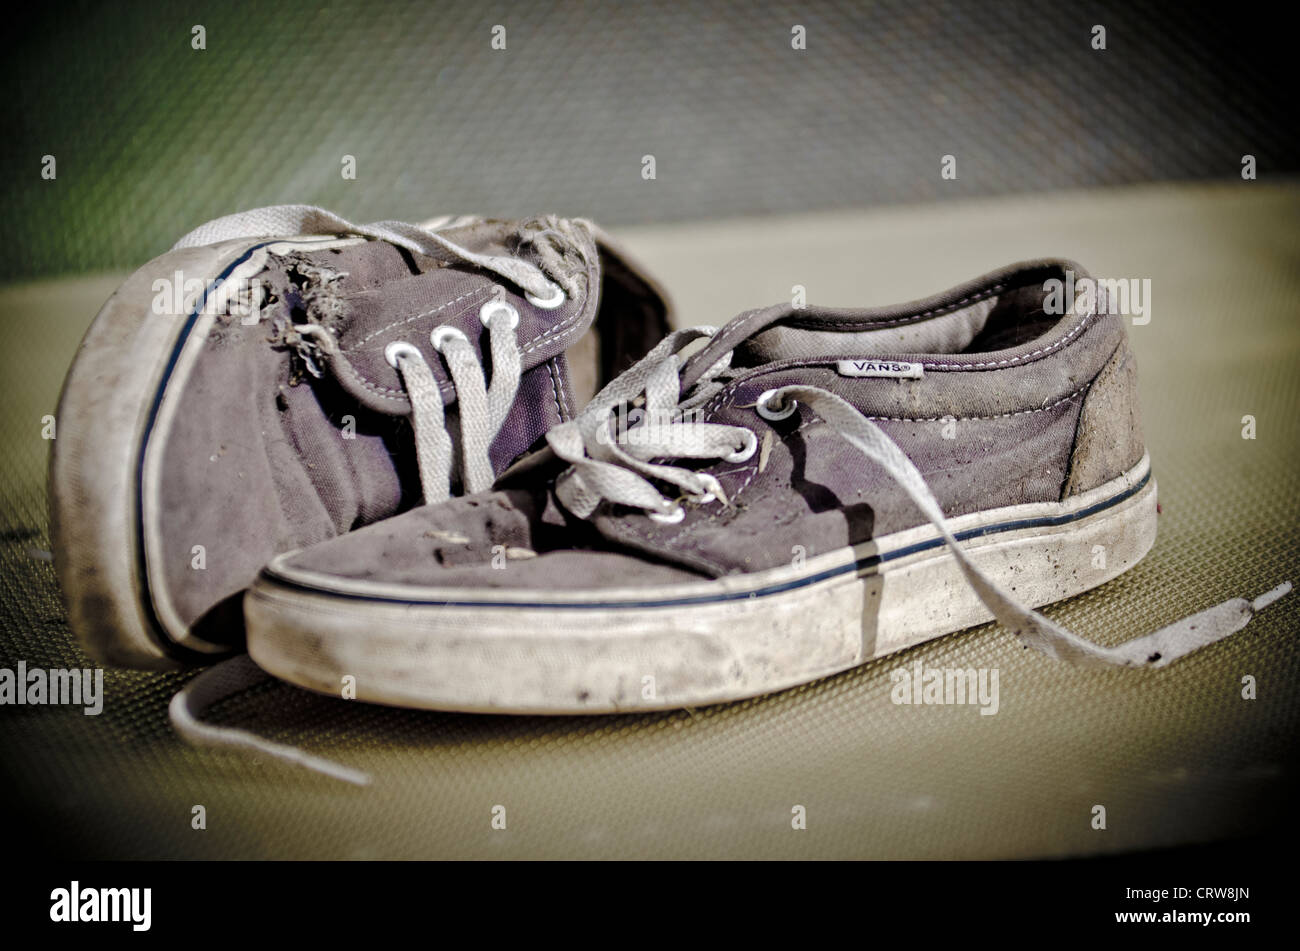 Worn Pair of Vans Trainers - Stock Image